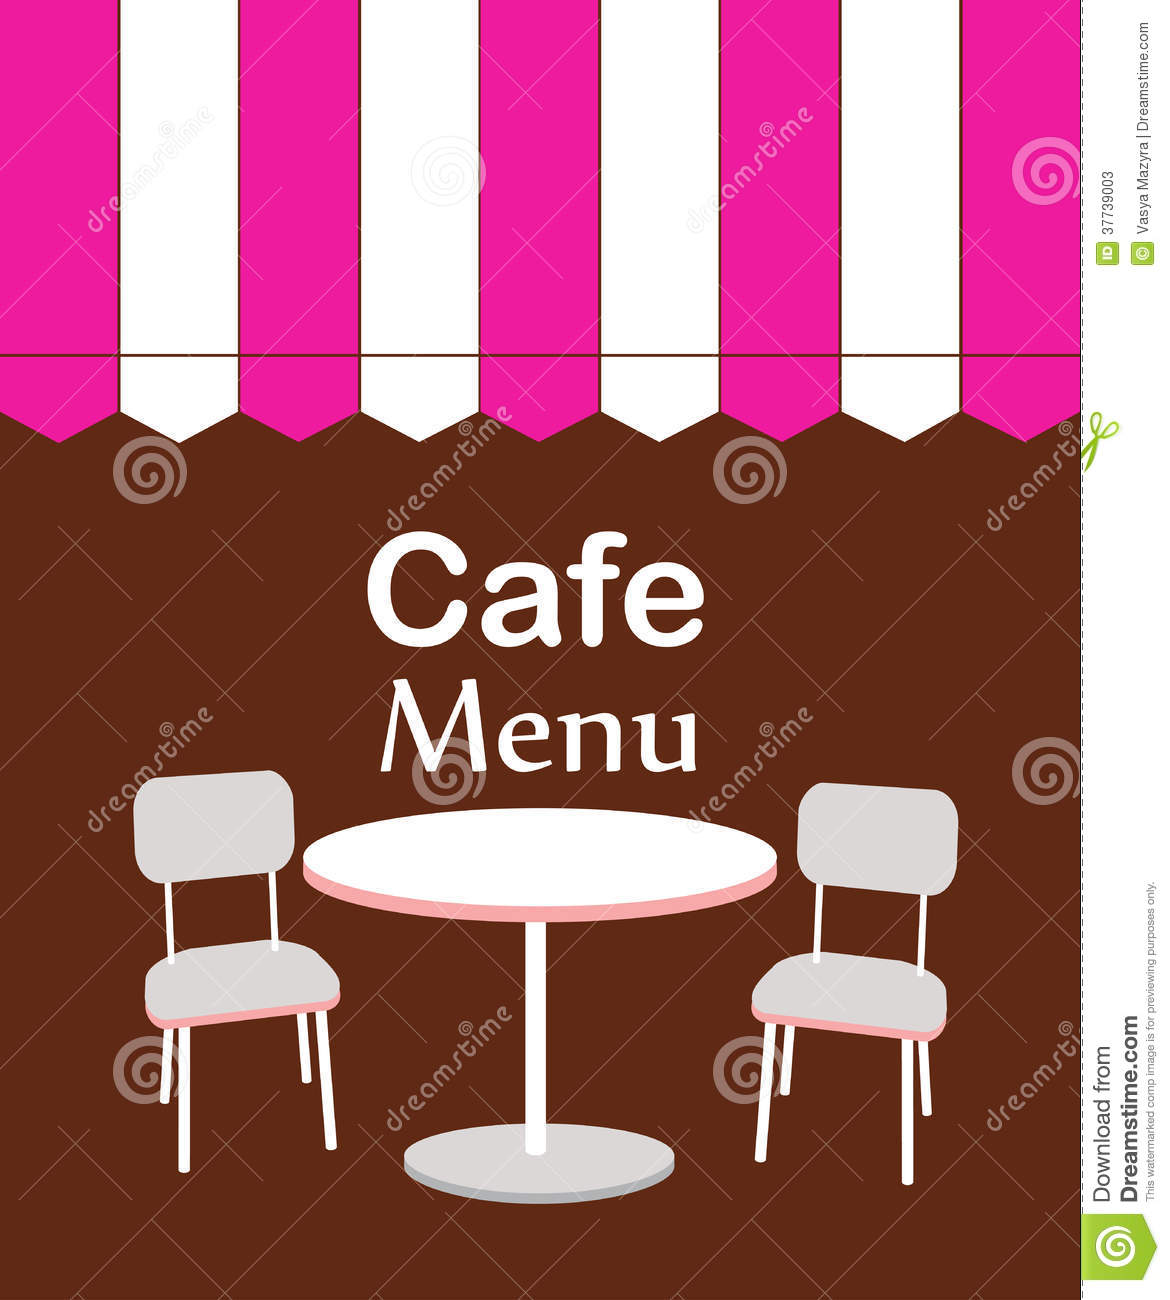 Two chairs and table in restaurant vector illustration